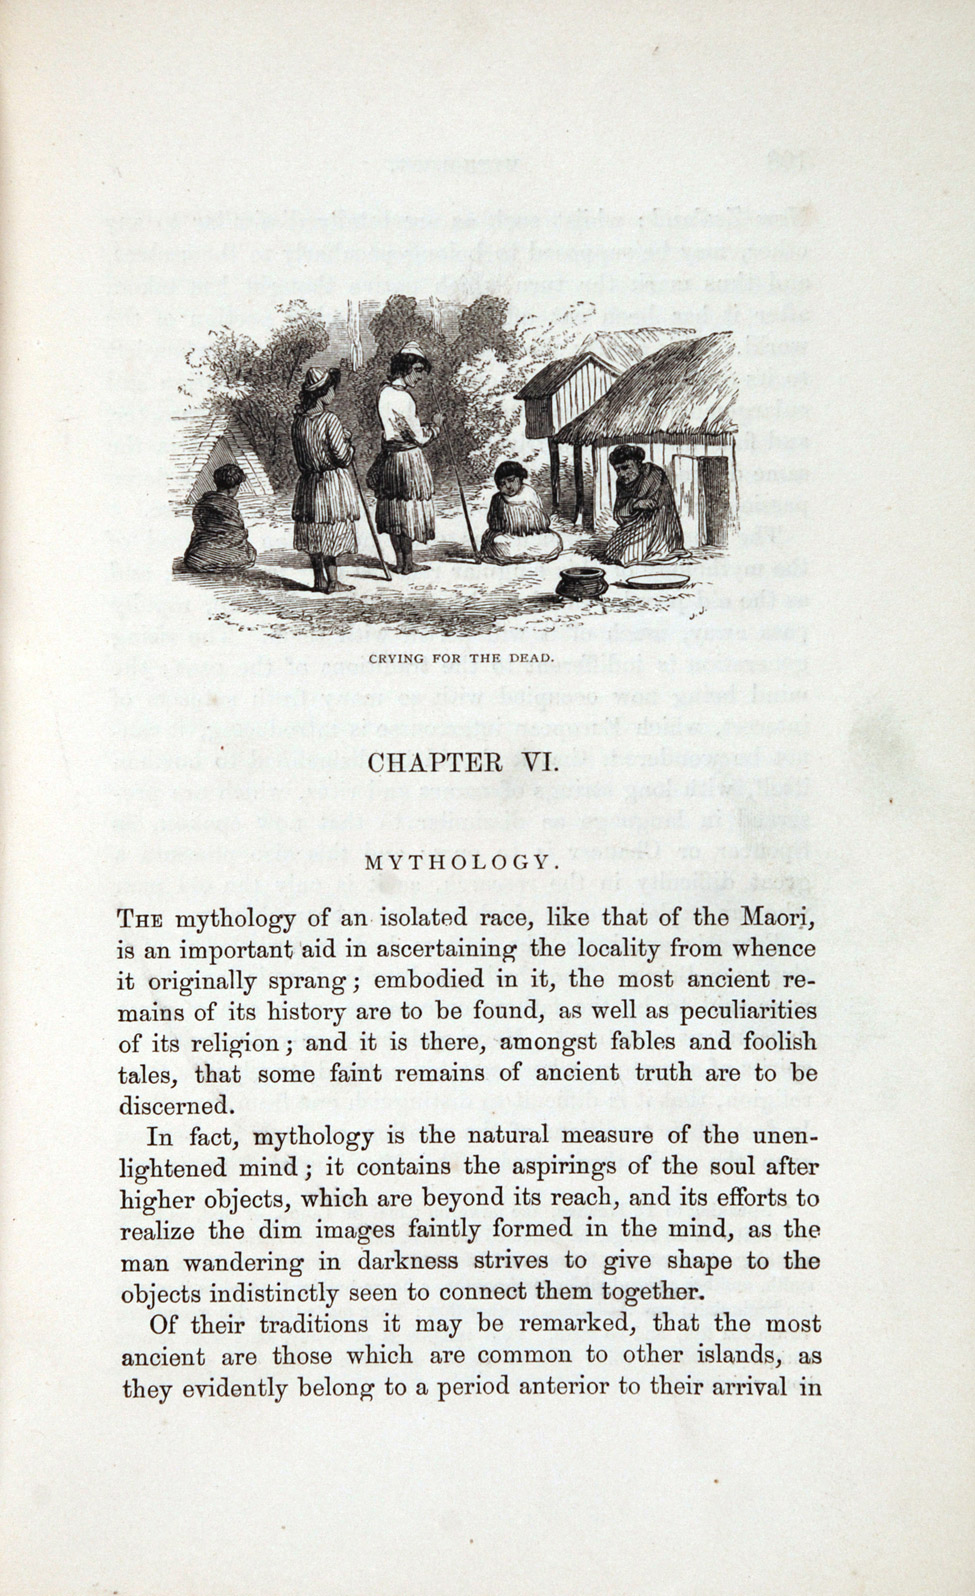 Rev. Richard Taylor. <i>Te Ika a Maui; New Zealand and Its Inhabitants. </i> London: William Macintosh, 24 Paternoster Row, and H. Ireson Jones, Wanganui, New Zealand, 1870.